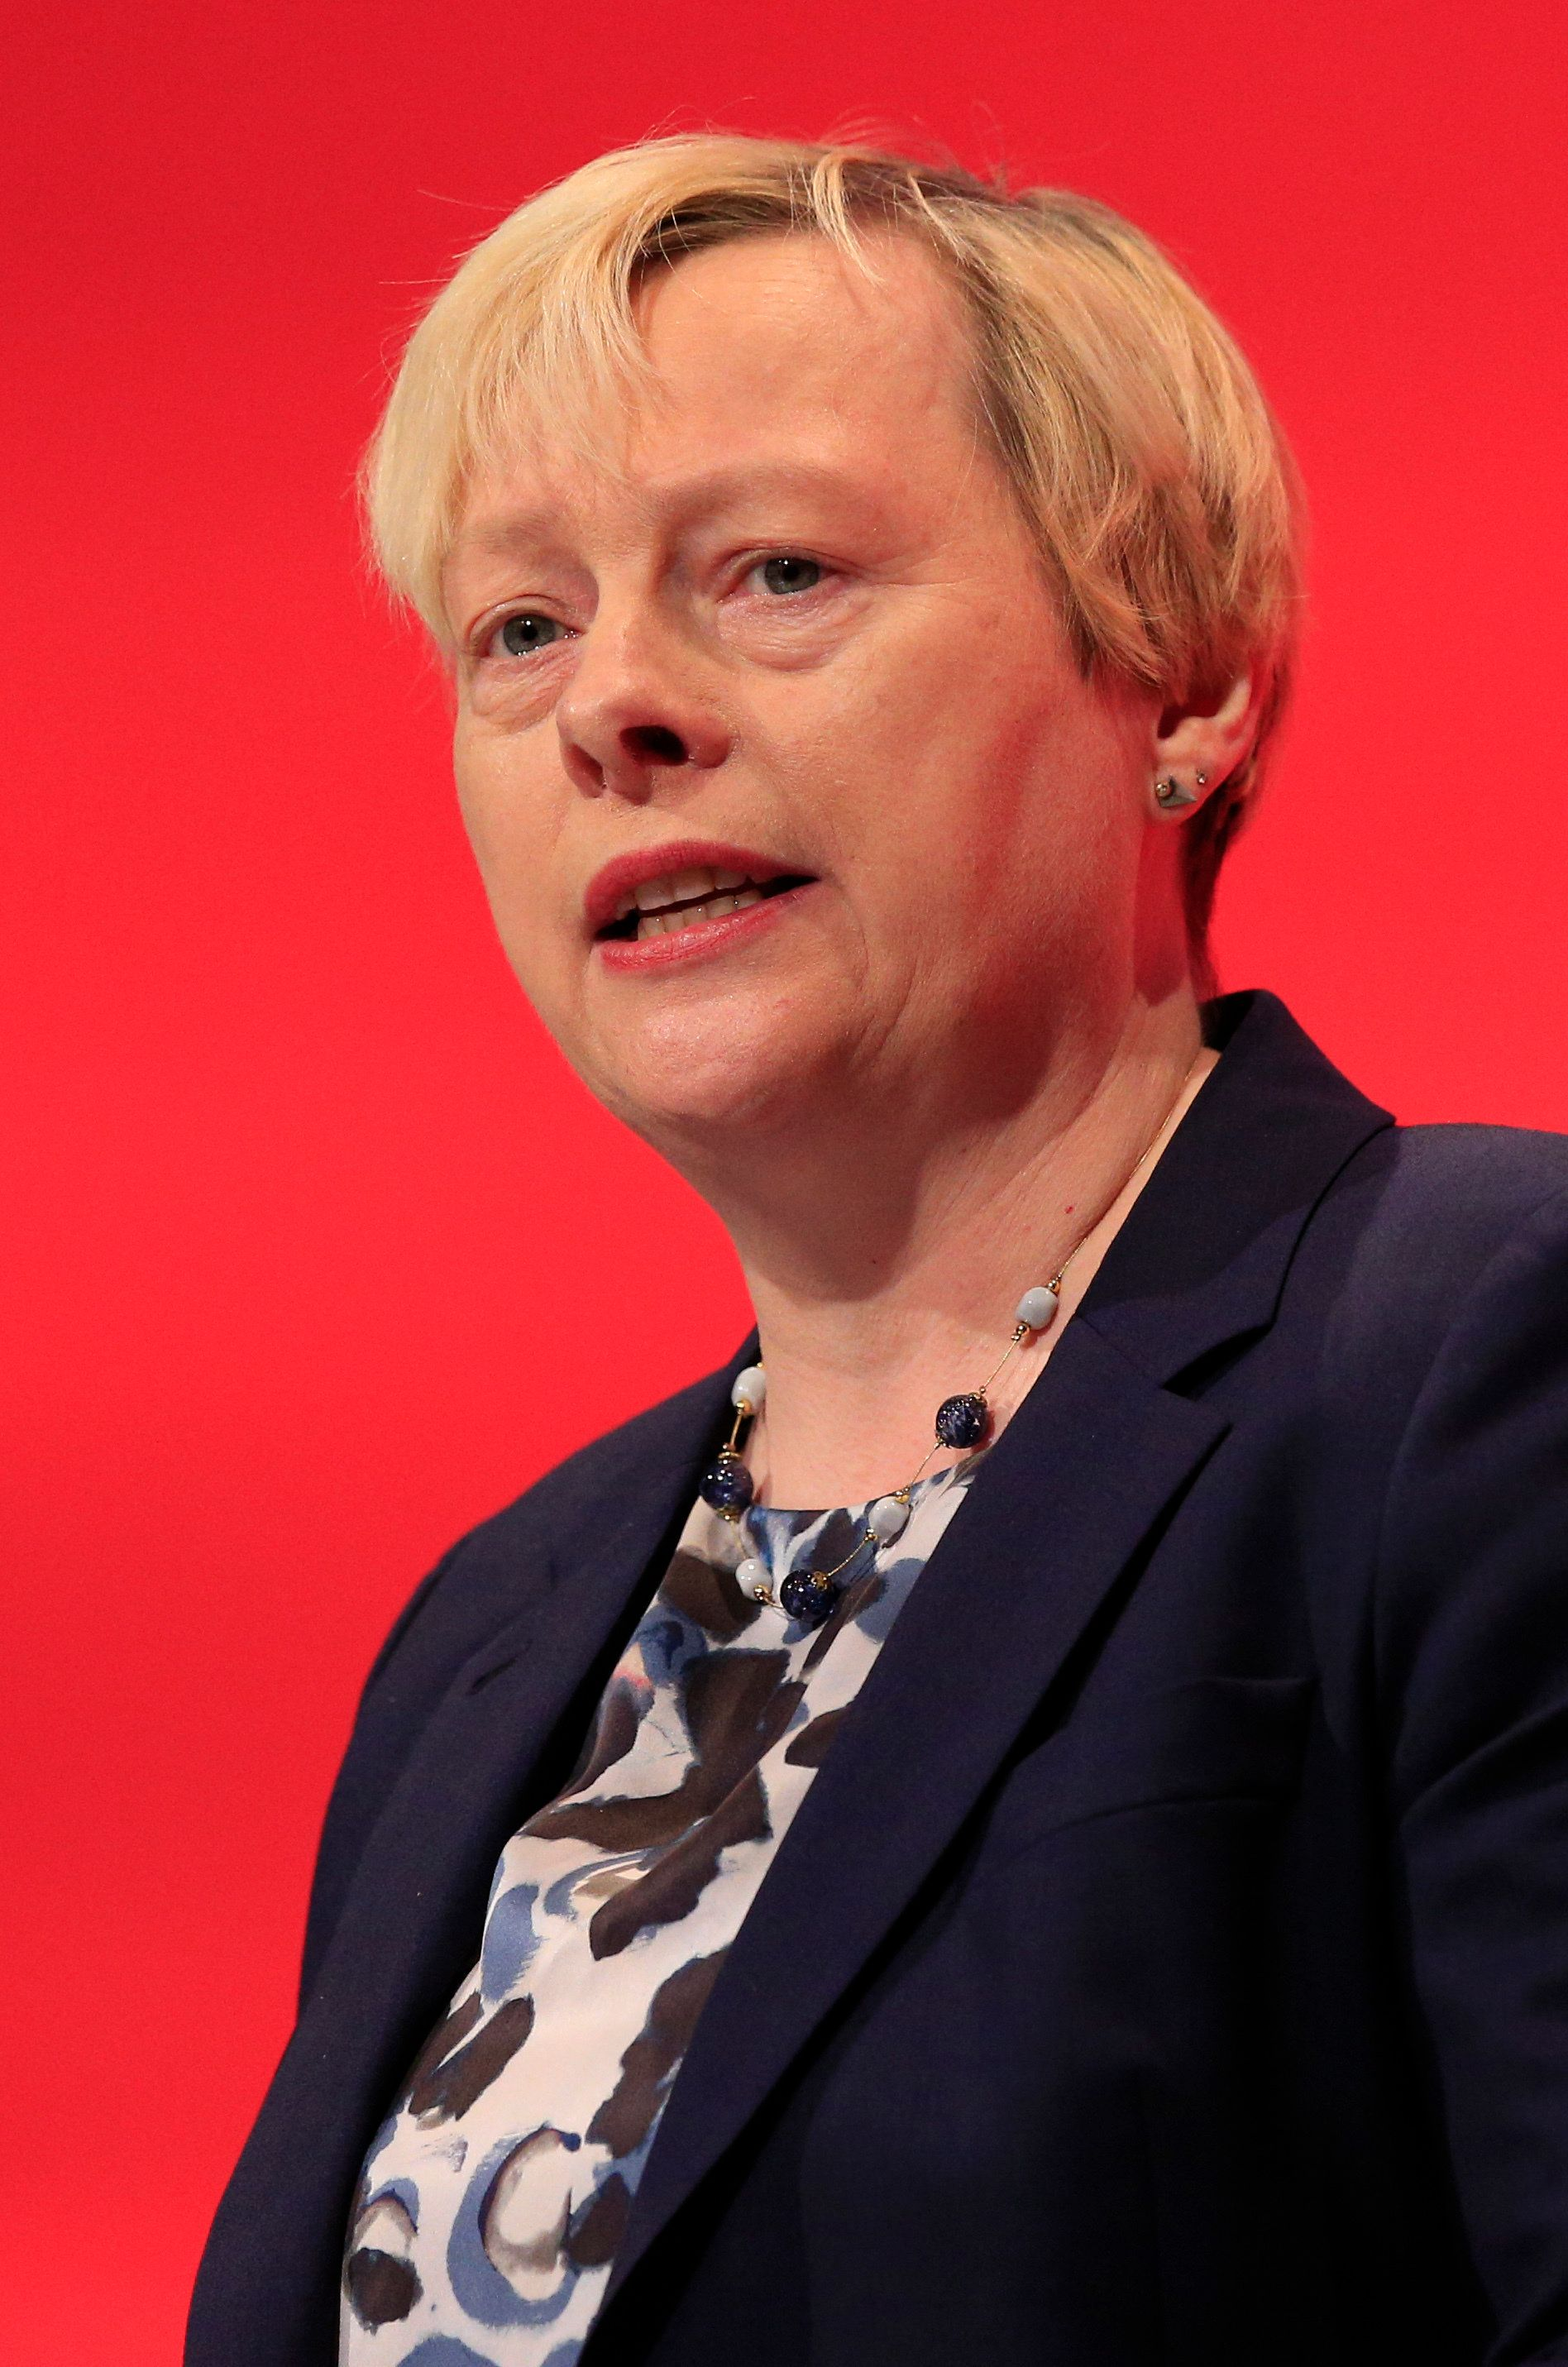 Angela Eagle To Announce She Will Stand For Labour Party